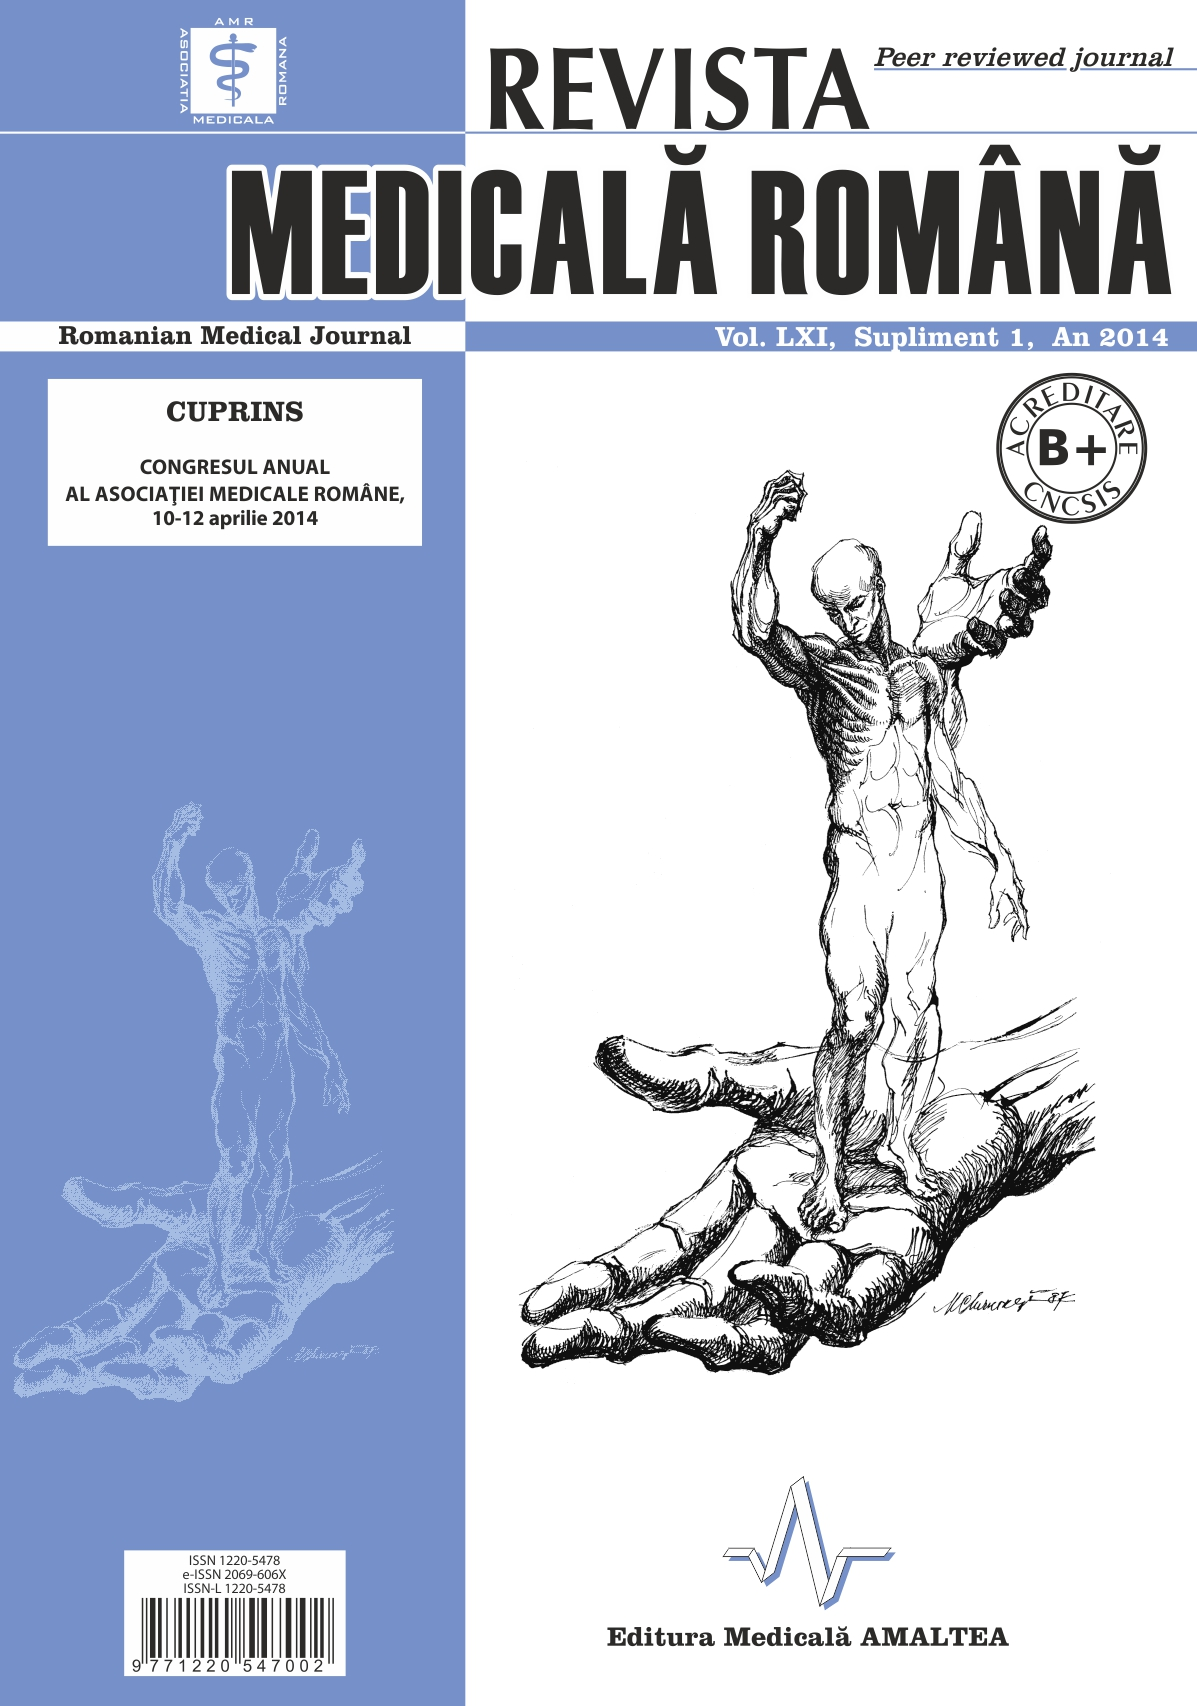 REVISTA MEDICALA ROMANA - Romanian Medical Journal, Vol. LXI, Supliment, Year 2014